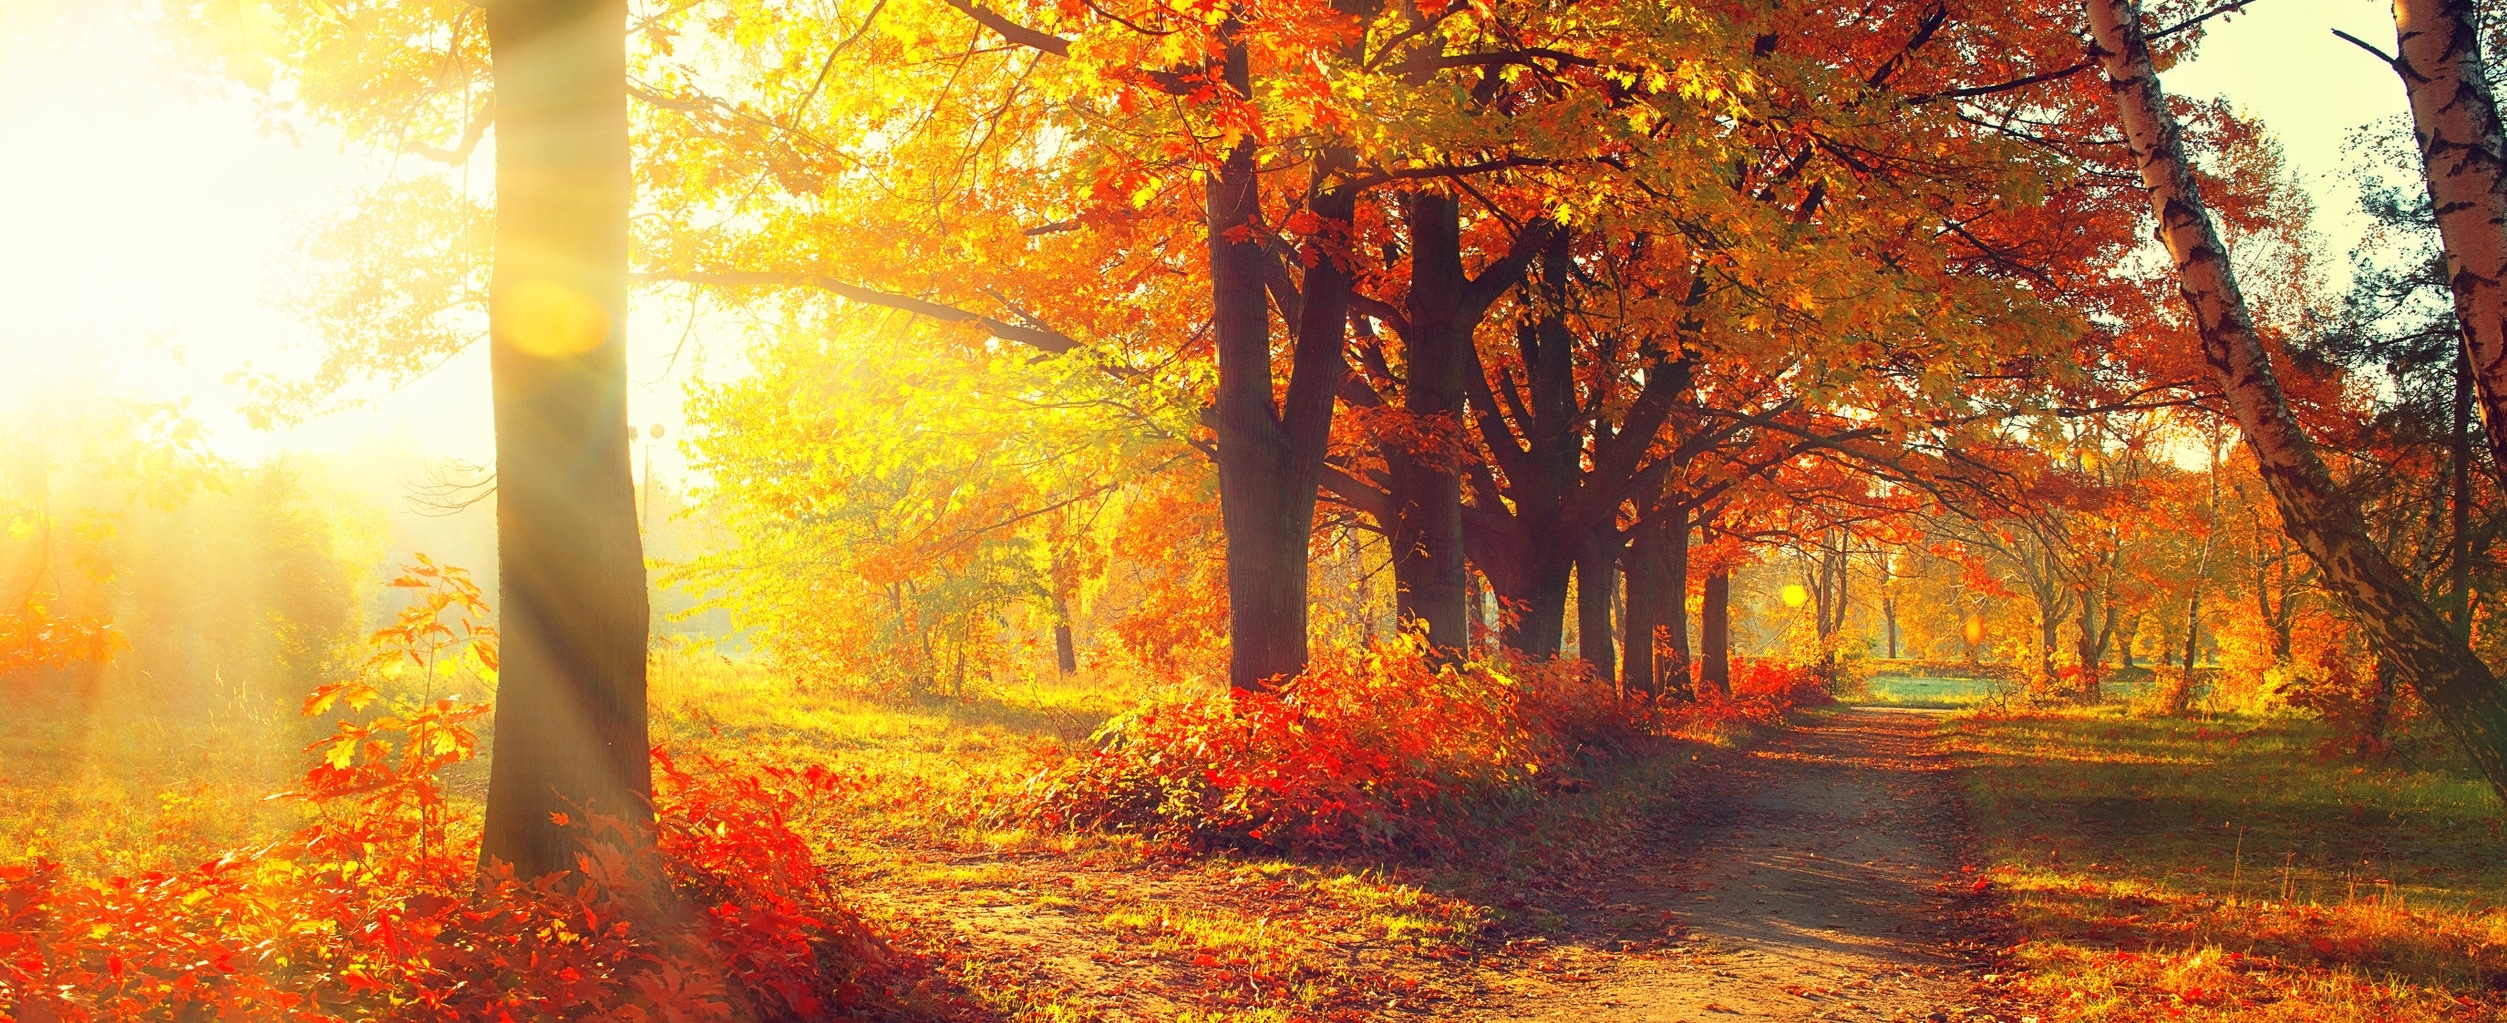 Trees and Leaves in sun rays